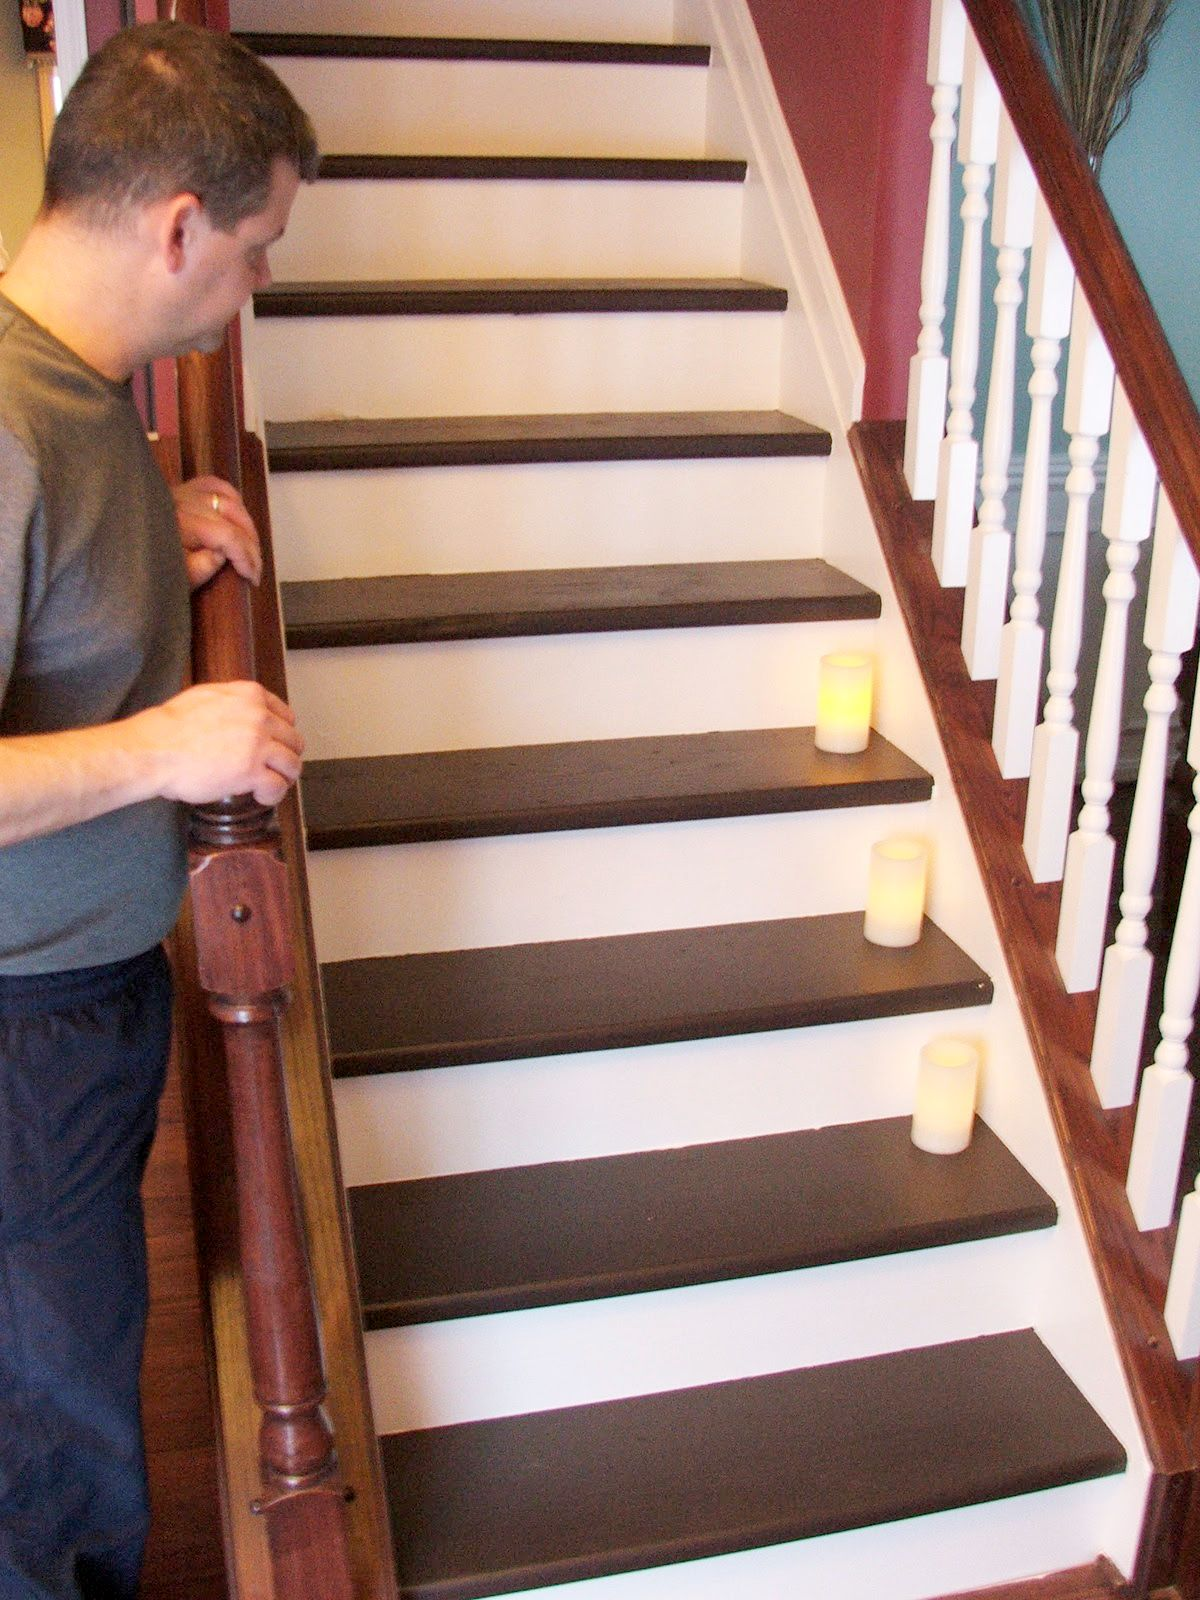 Under 100 carpeted stair to wooden tread makeover diy for Diy staircase makeover